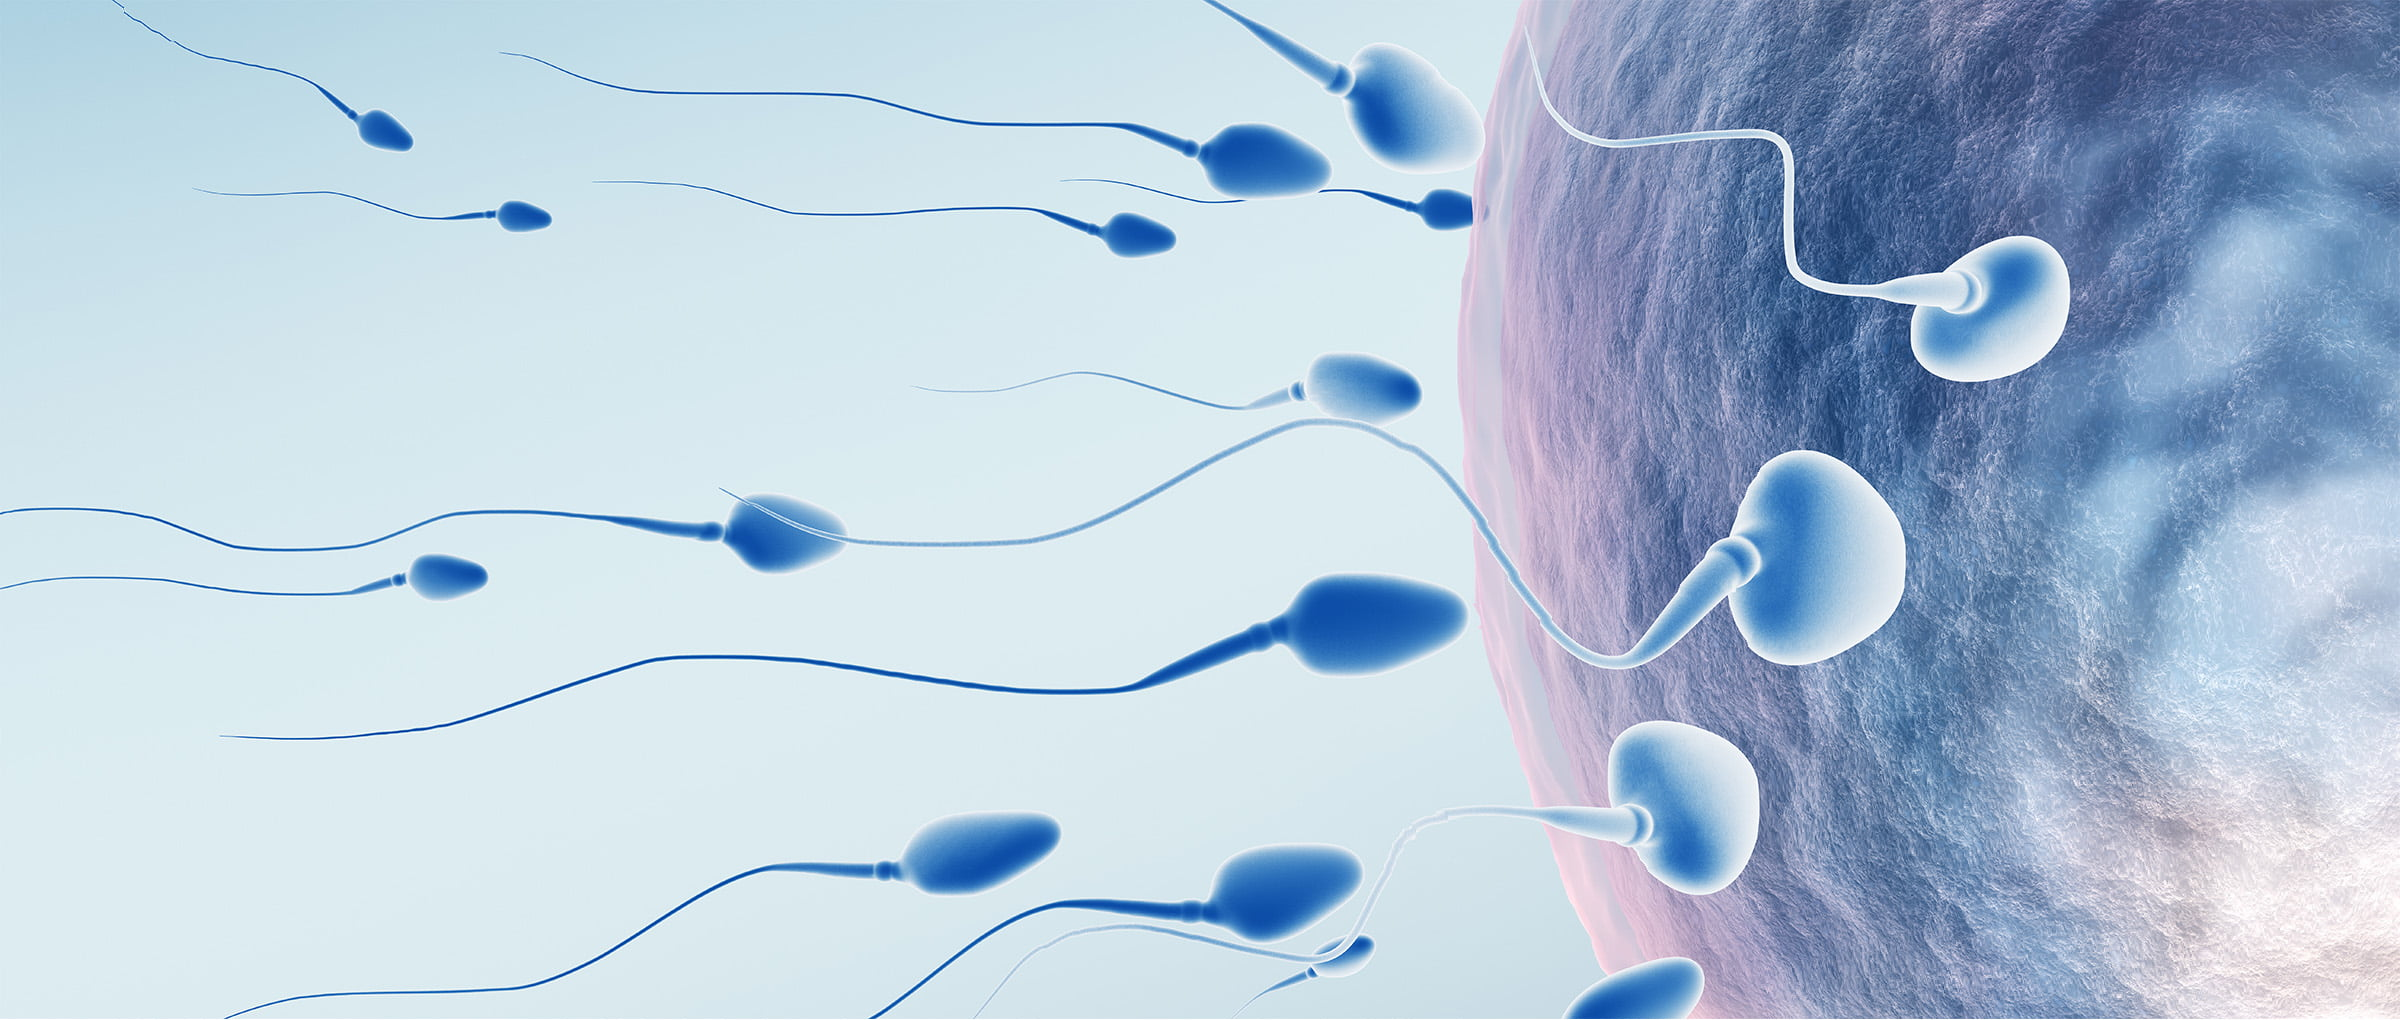 Donor-egg IVF in Denmark